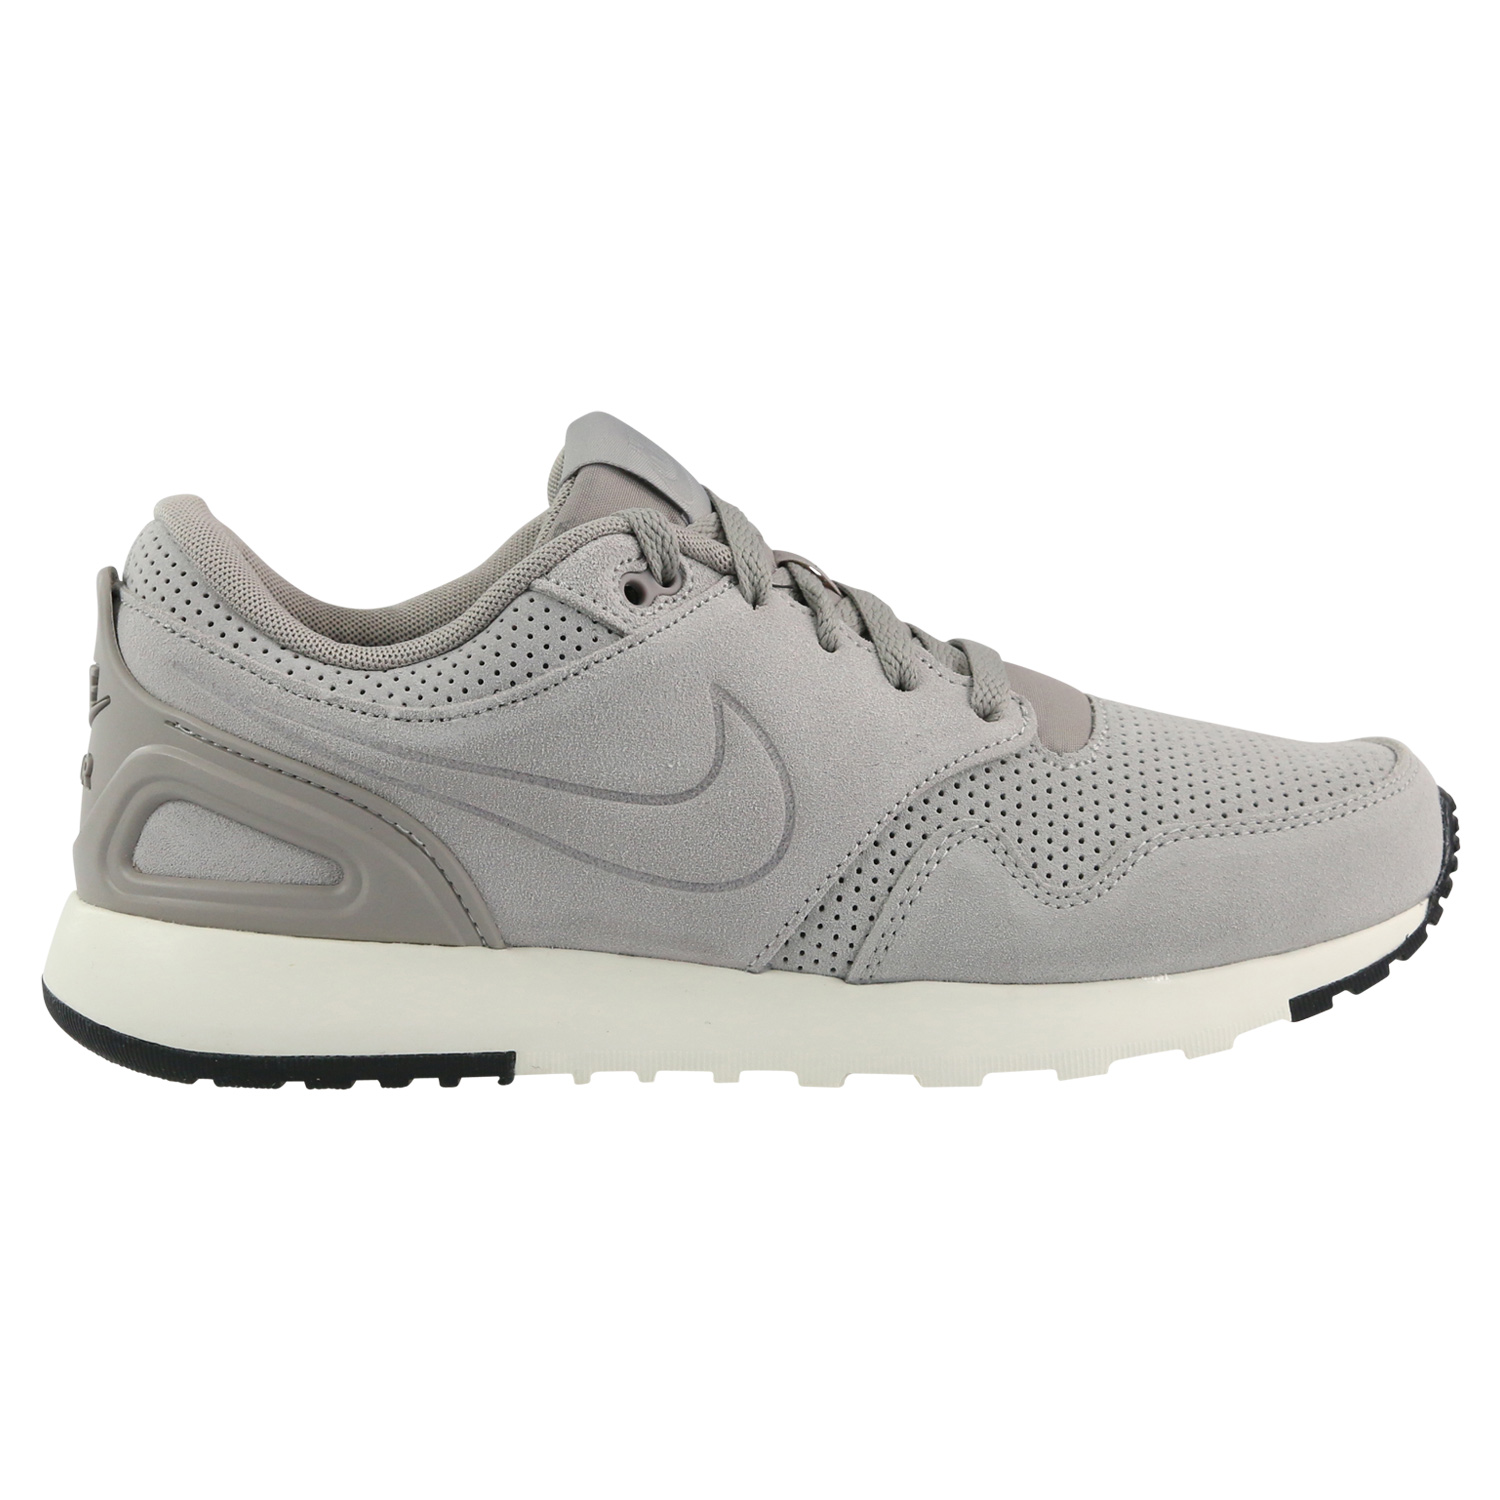 low priced cd36d 0a9a4 NIKE Air Vibenna Sneaker Scarpe da uomo 866069 9175 39 - duradrusti.org